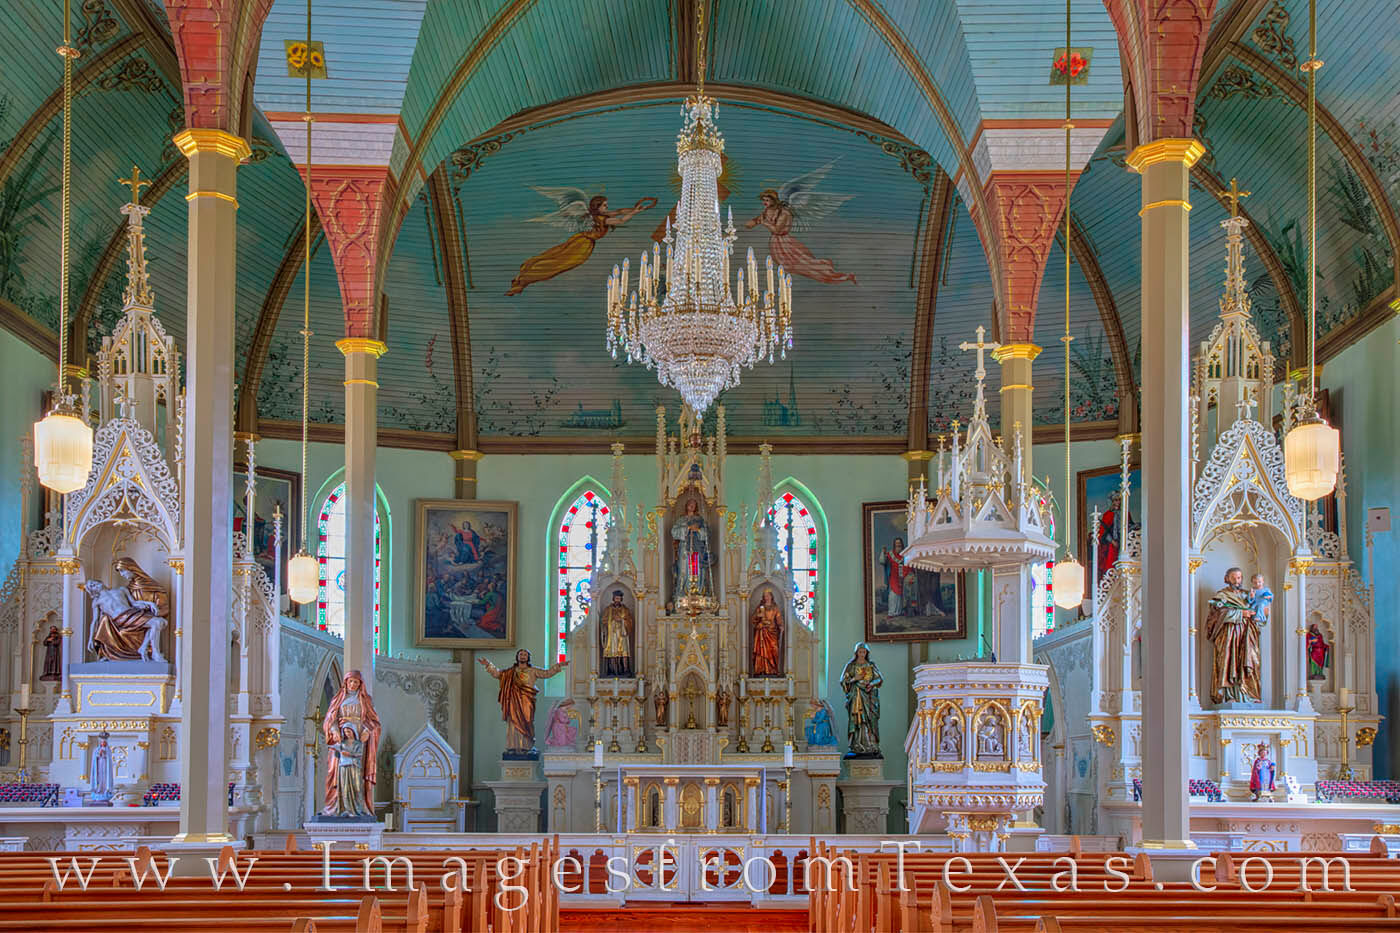 Built in 1895, St. Marys Catholic Church in Praha, Texas, is one of the oldest of the Painted Churches. The interior is an hand...